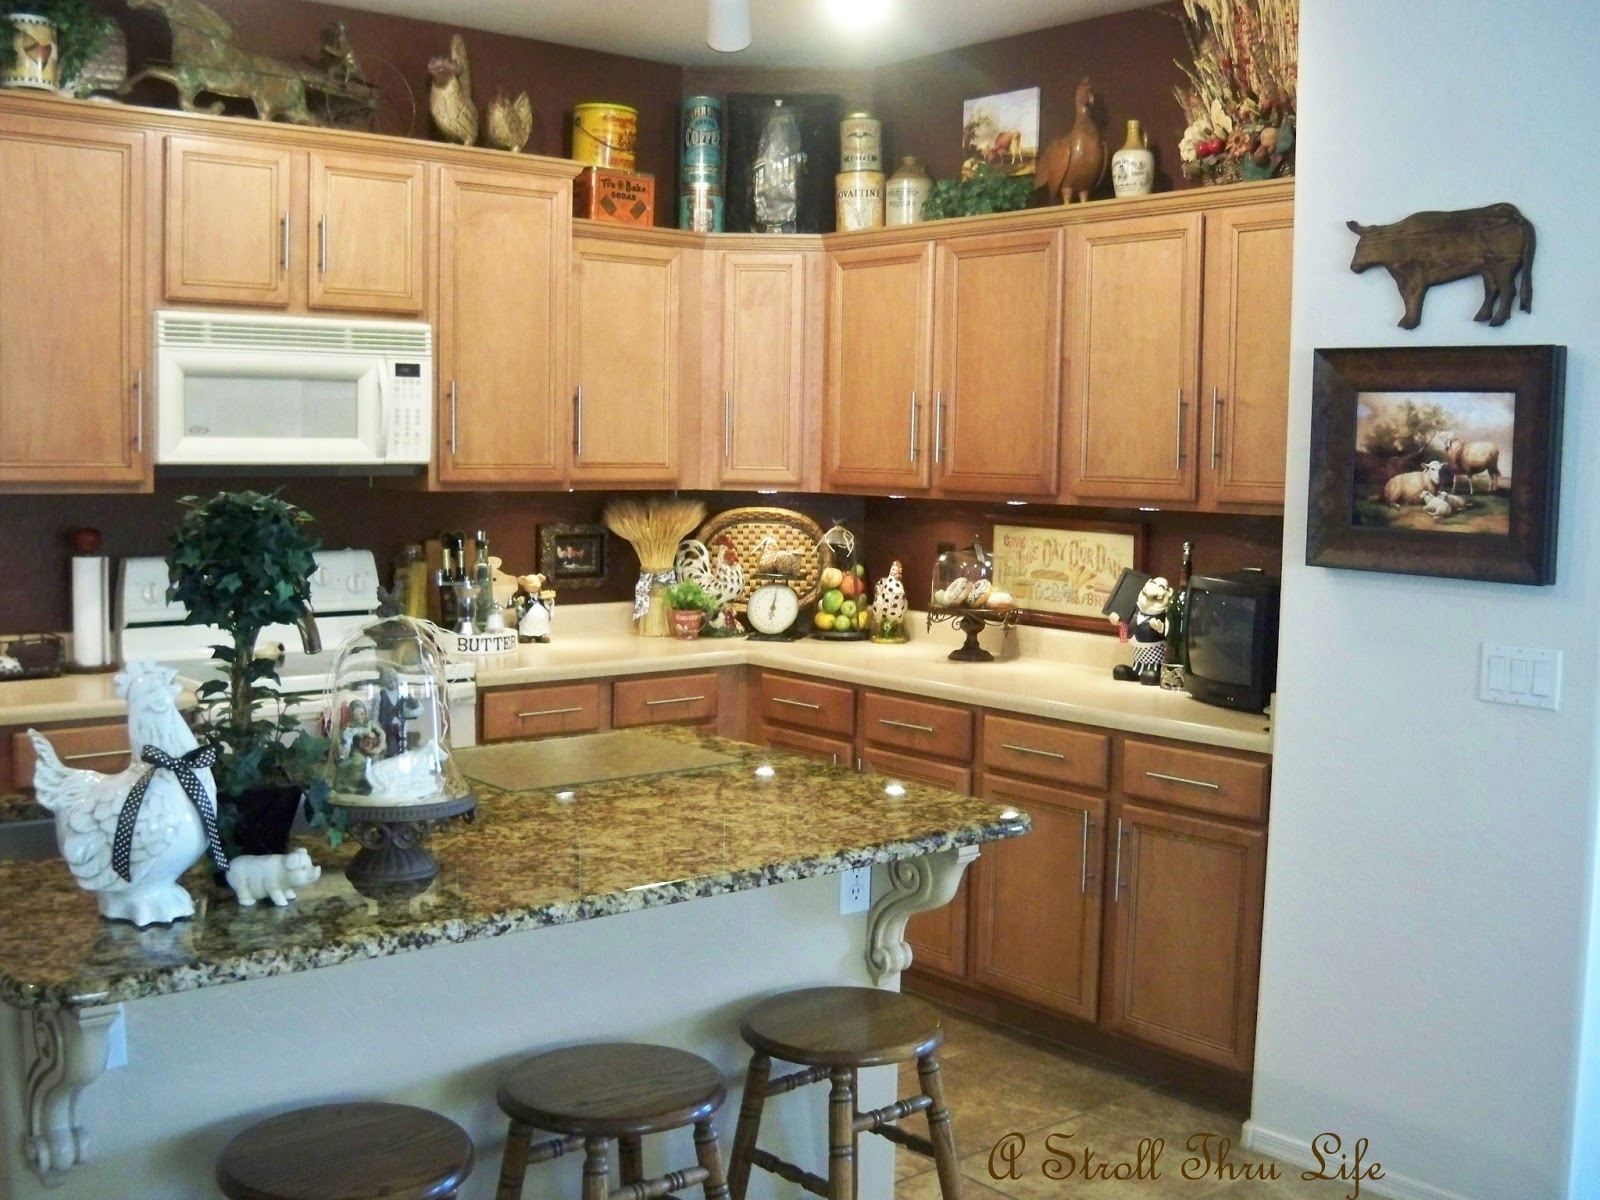 Decorating A Kitchen Countertop within Amazing Kitchen Countertop Decorating Ideas Pictures you should have